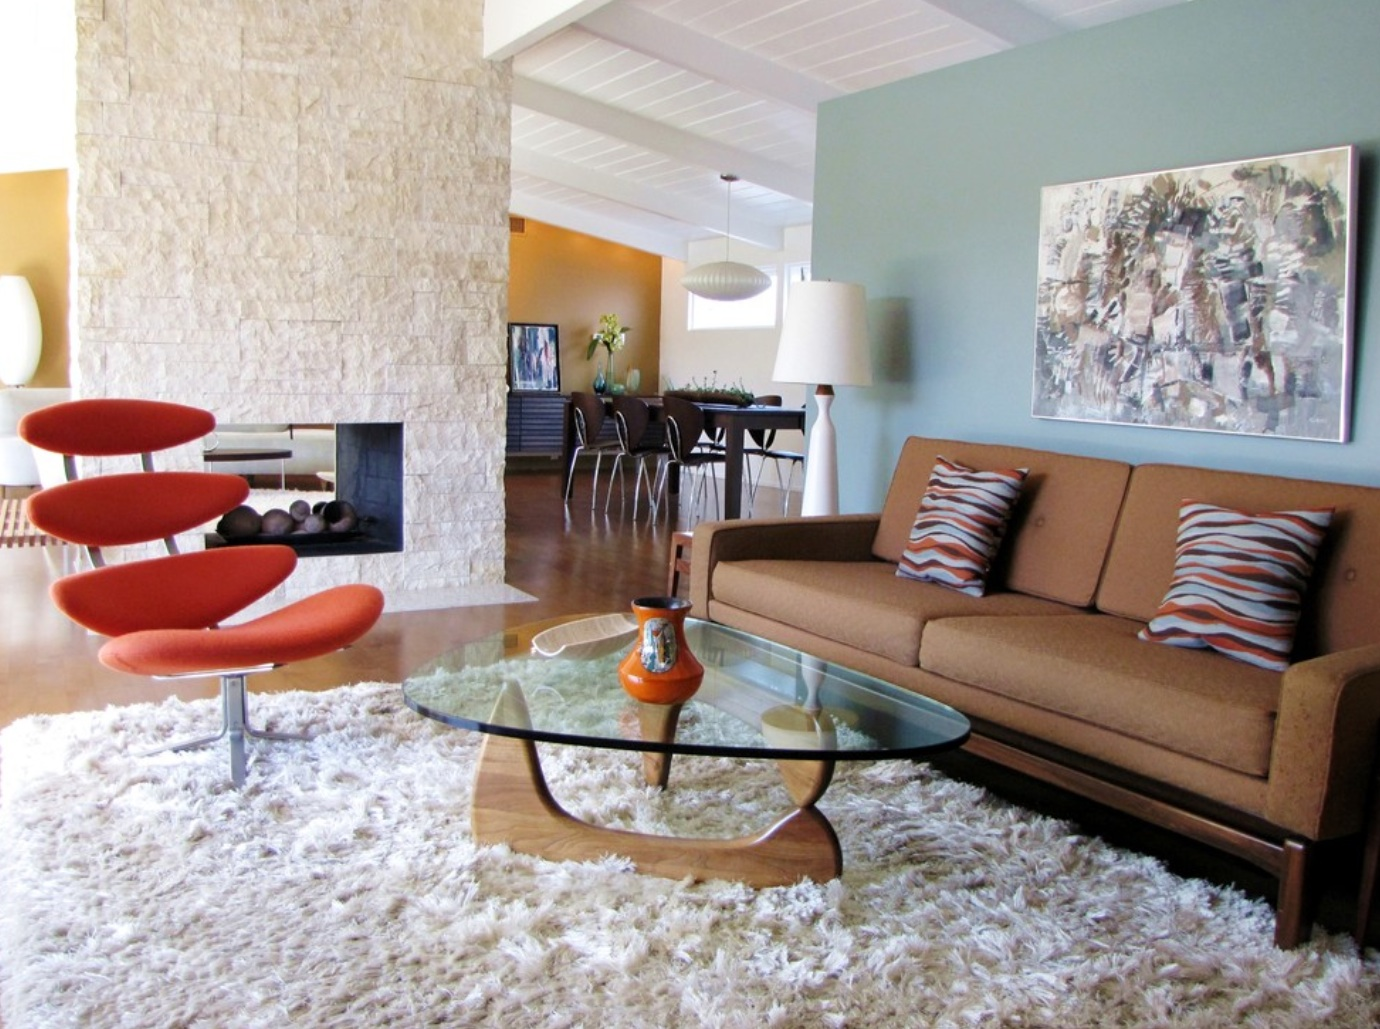 Mid Century Modern Interior Paint Colors Photos Of 2013 The Most Popular Midcentury Modern Spaces